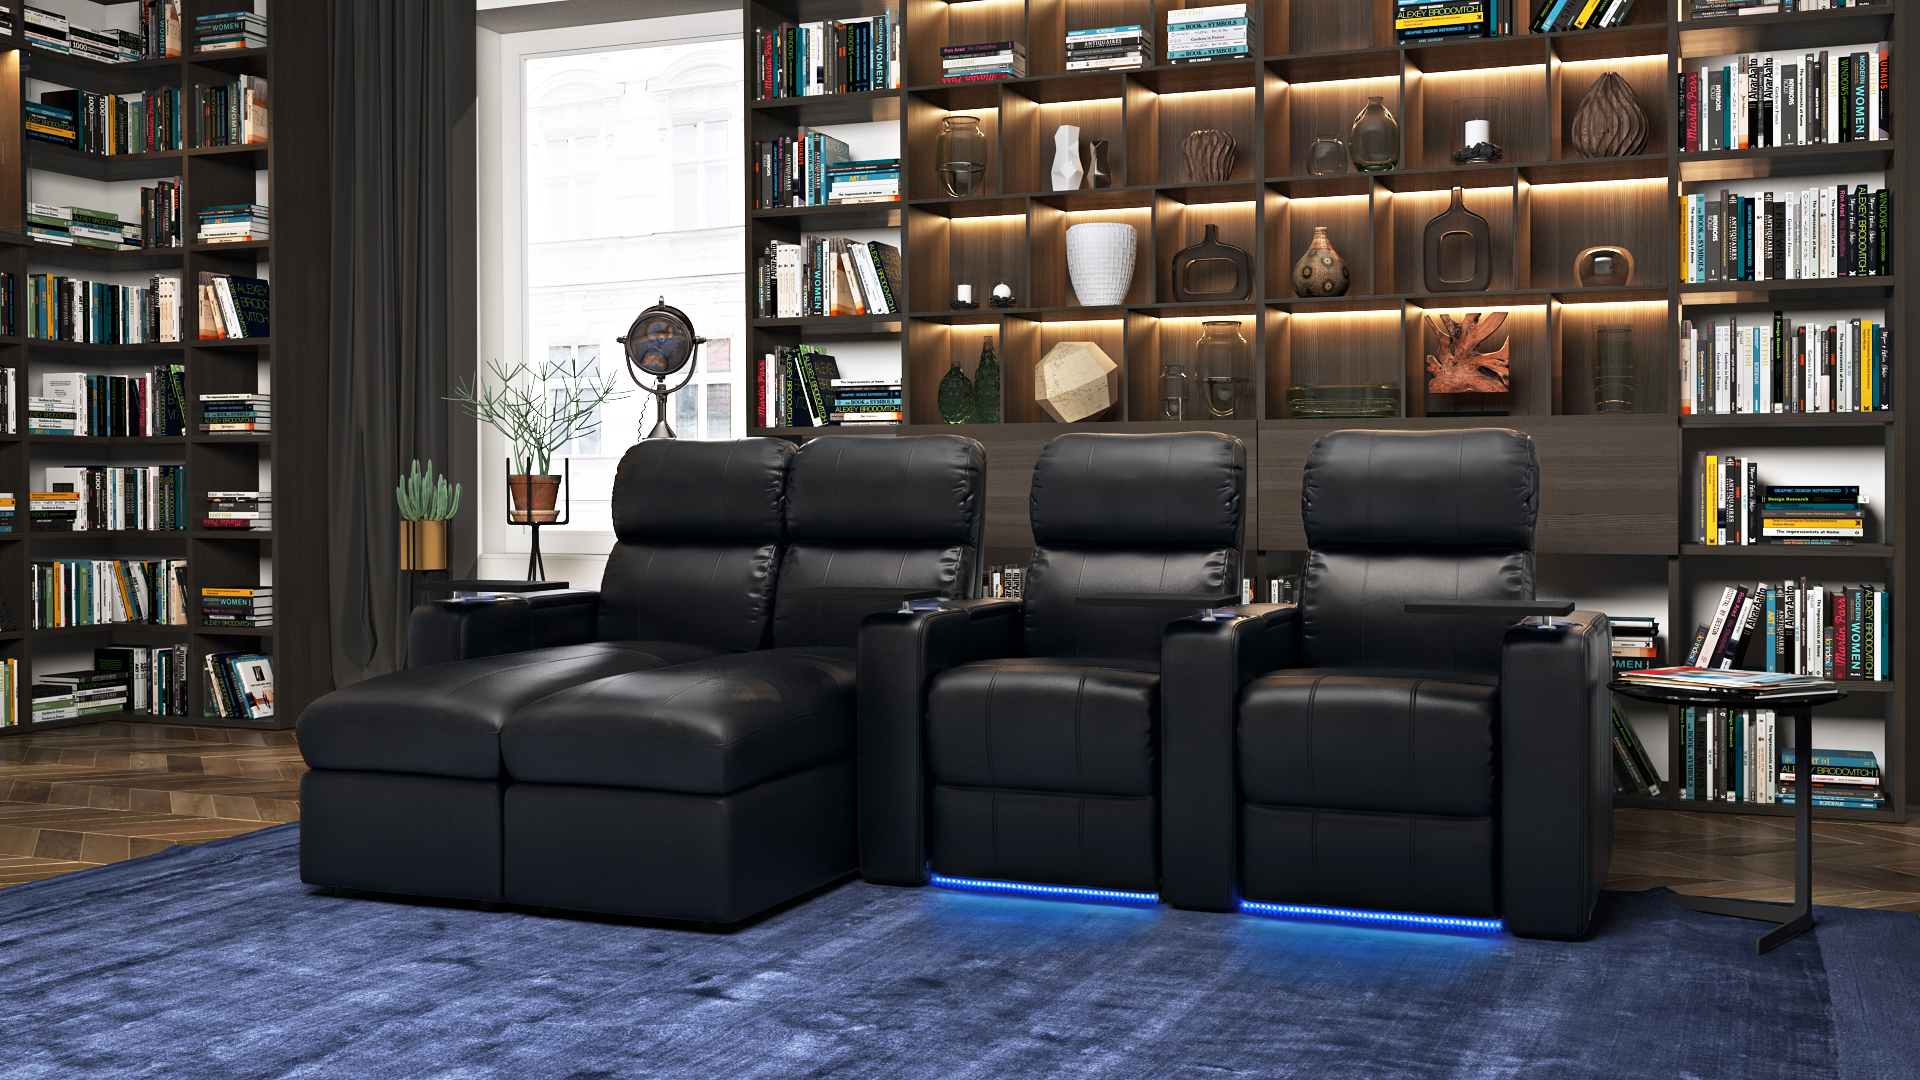 Sofa CG Image to Show the Product Benefits